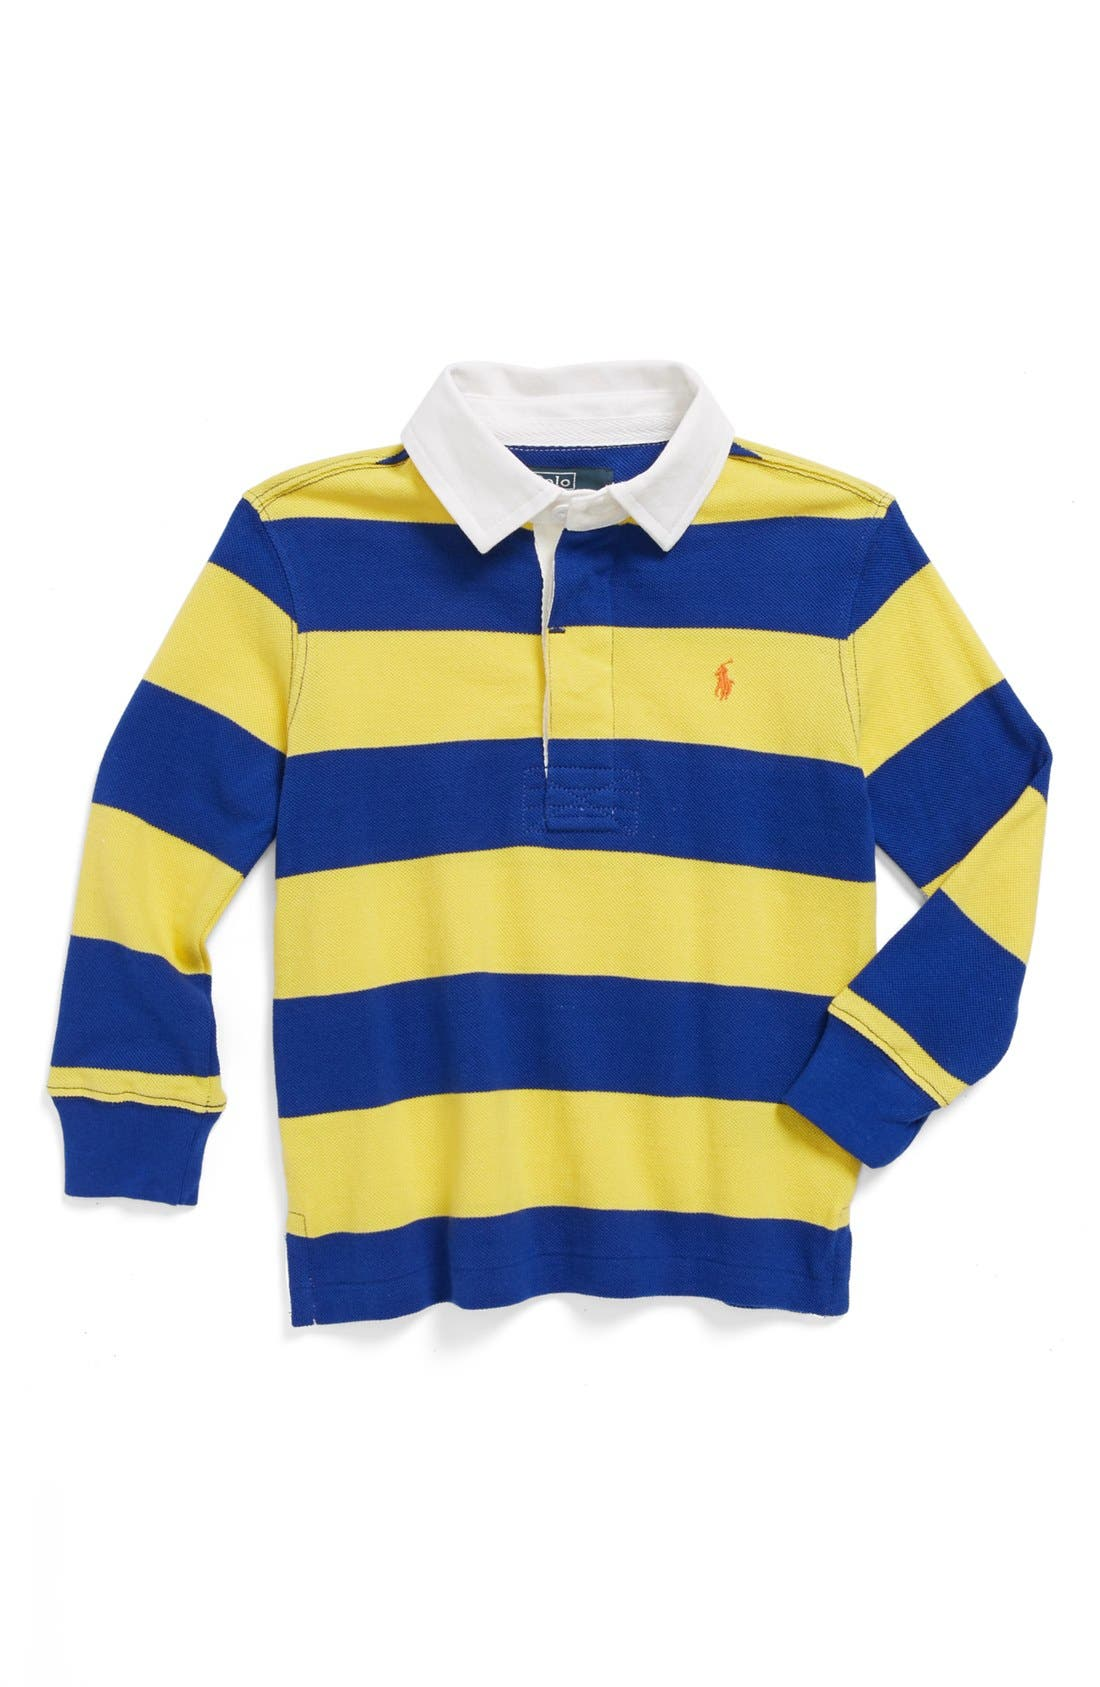 Alternate Image 1 Selected - Ralph Lauren Rugby Stripe Polo (Toddler Boys)